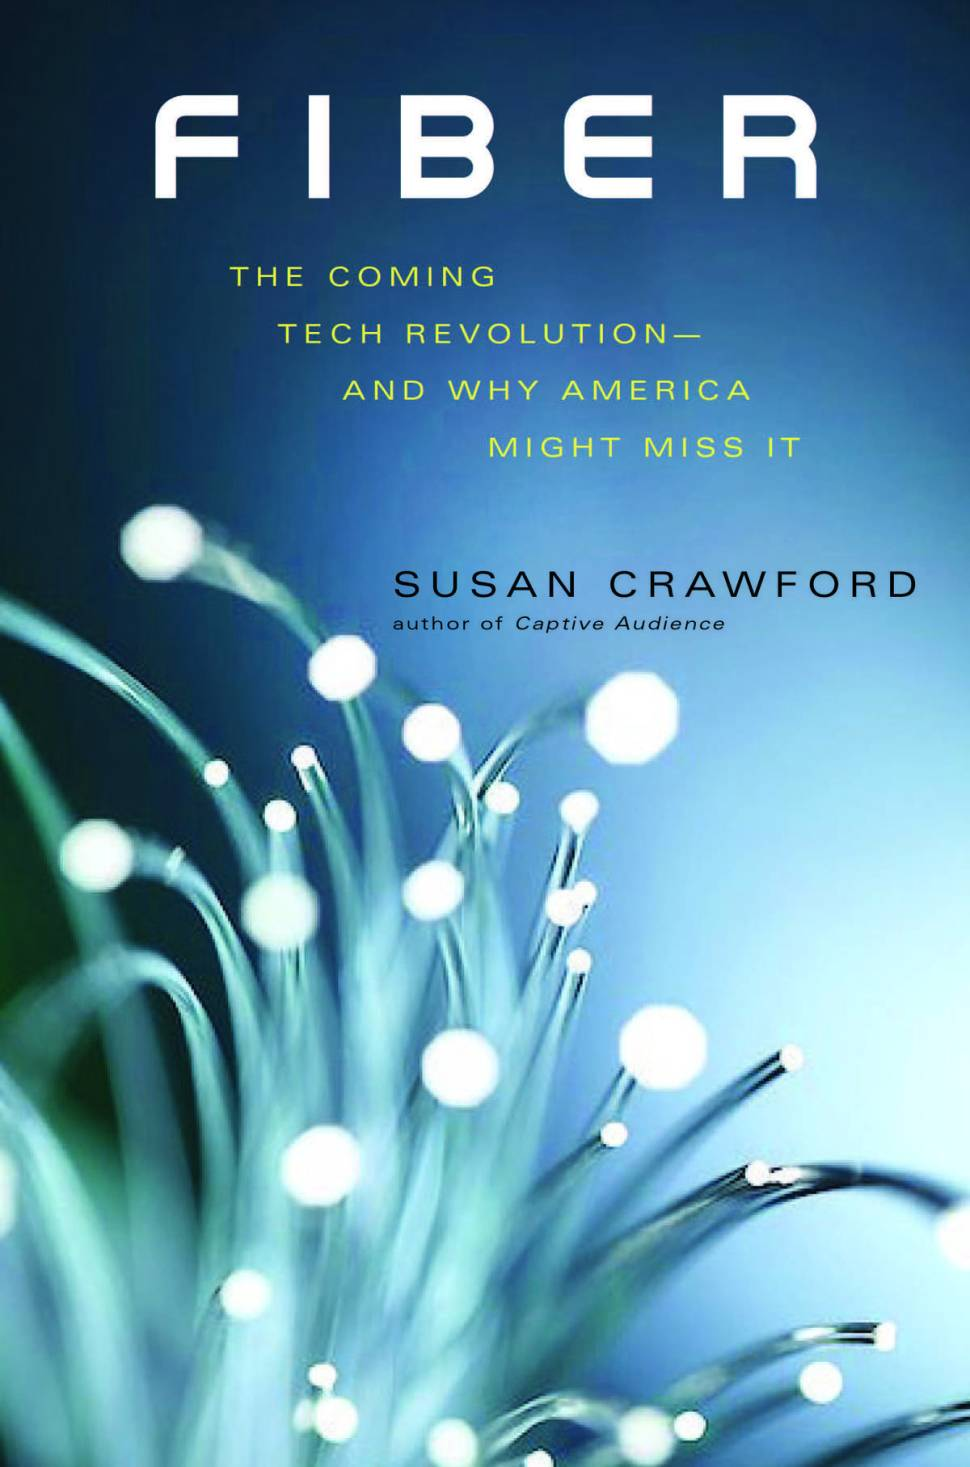 America s Fiber Future: Susan Crawford on how America s wired future is slipping away